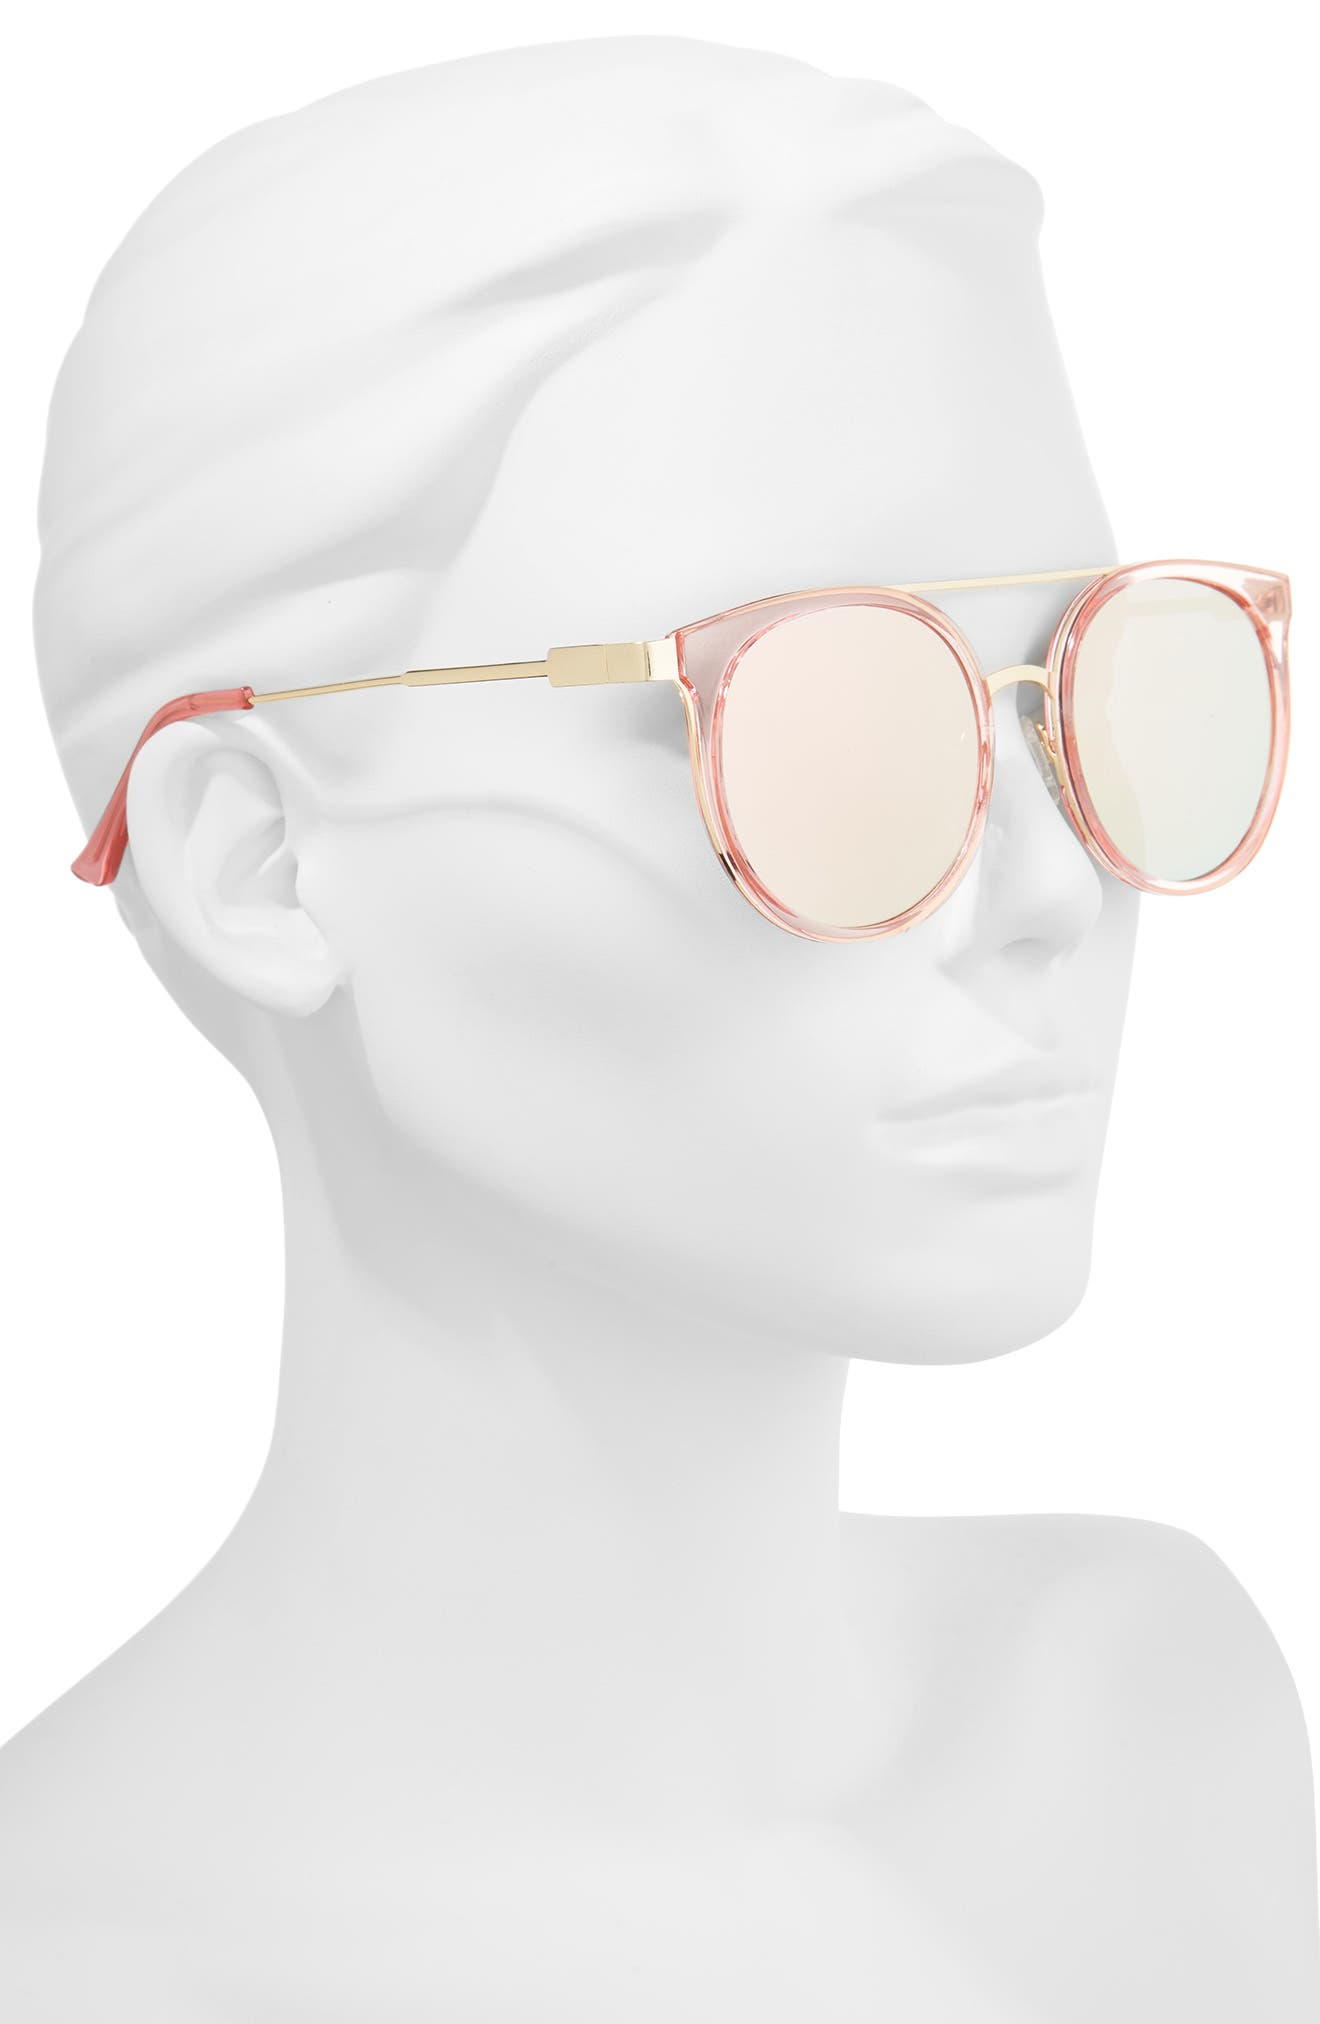 52mm Mirror Lens Round Sunglasses,                             Alternate thumbnail 2, color,                             Gold/ Pink